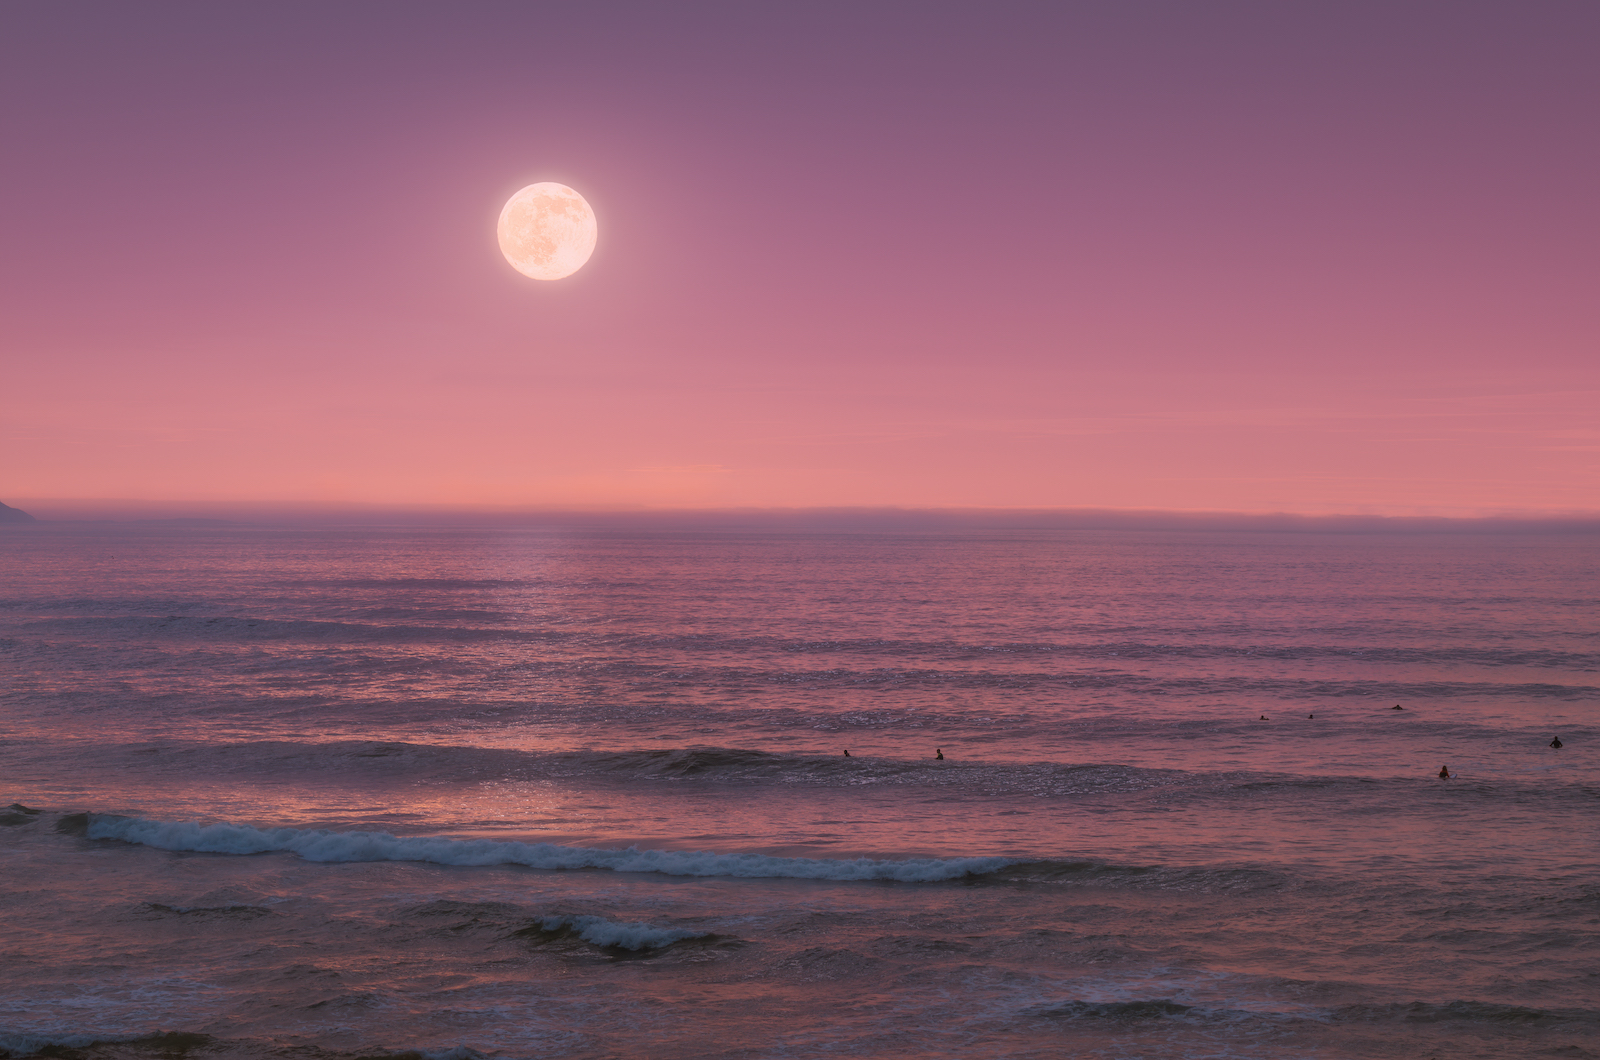 Channeling the Peace of the Pink Strawberry Moon